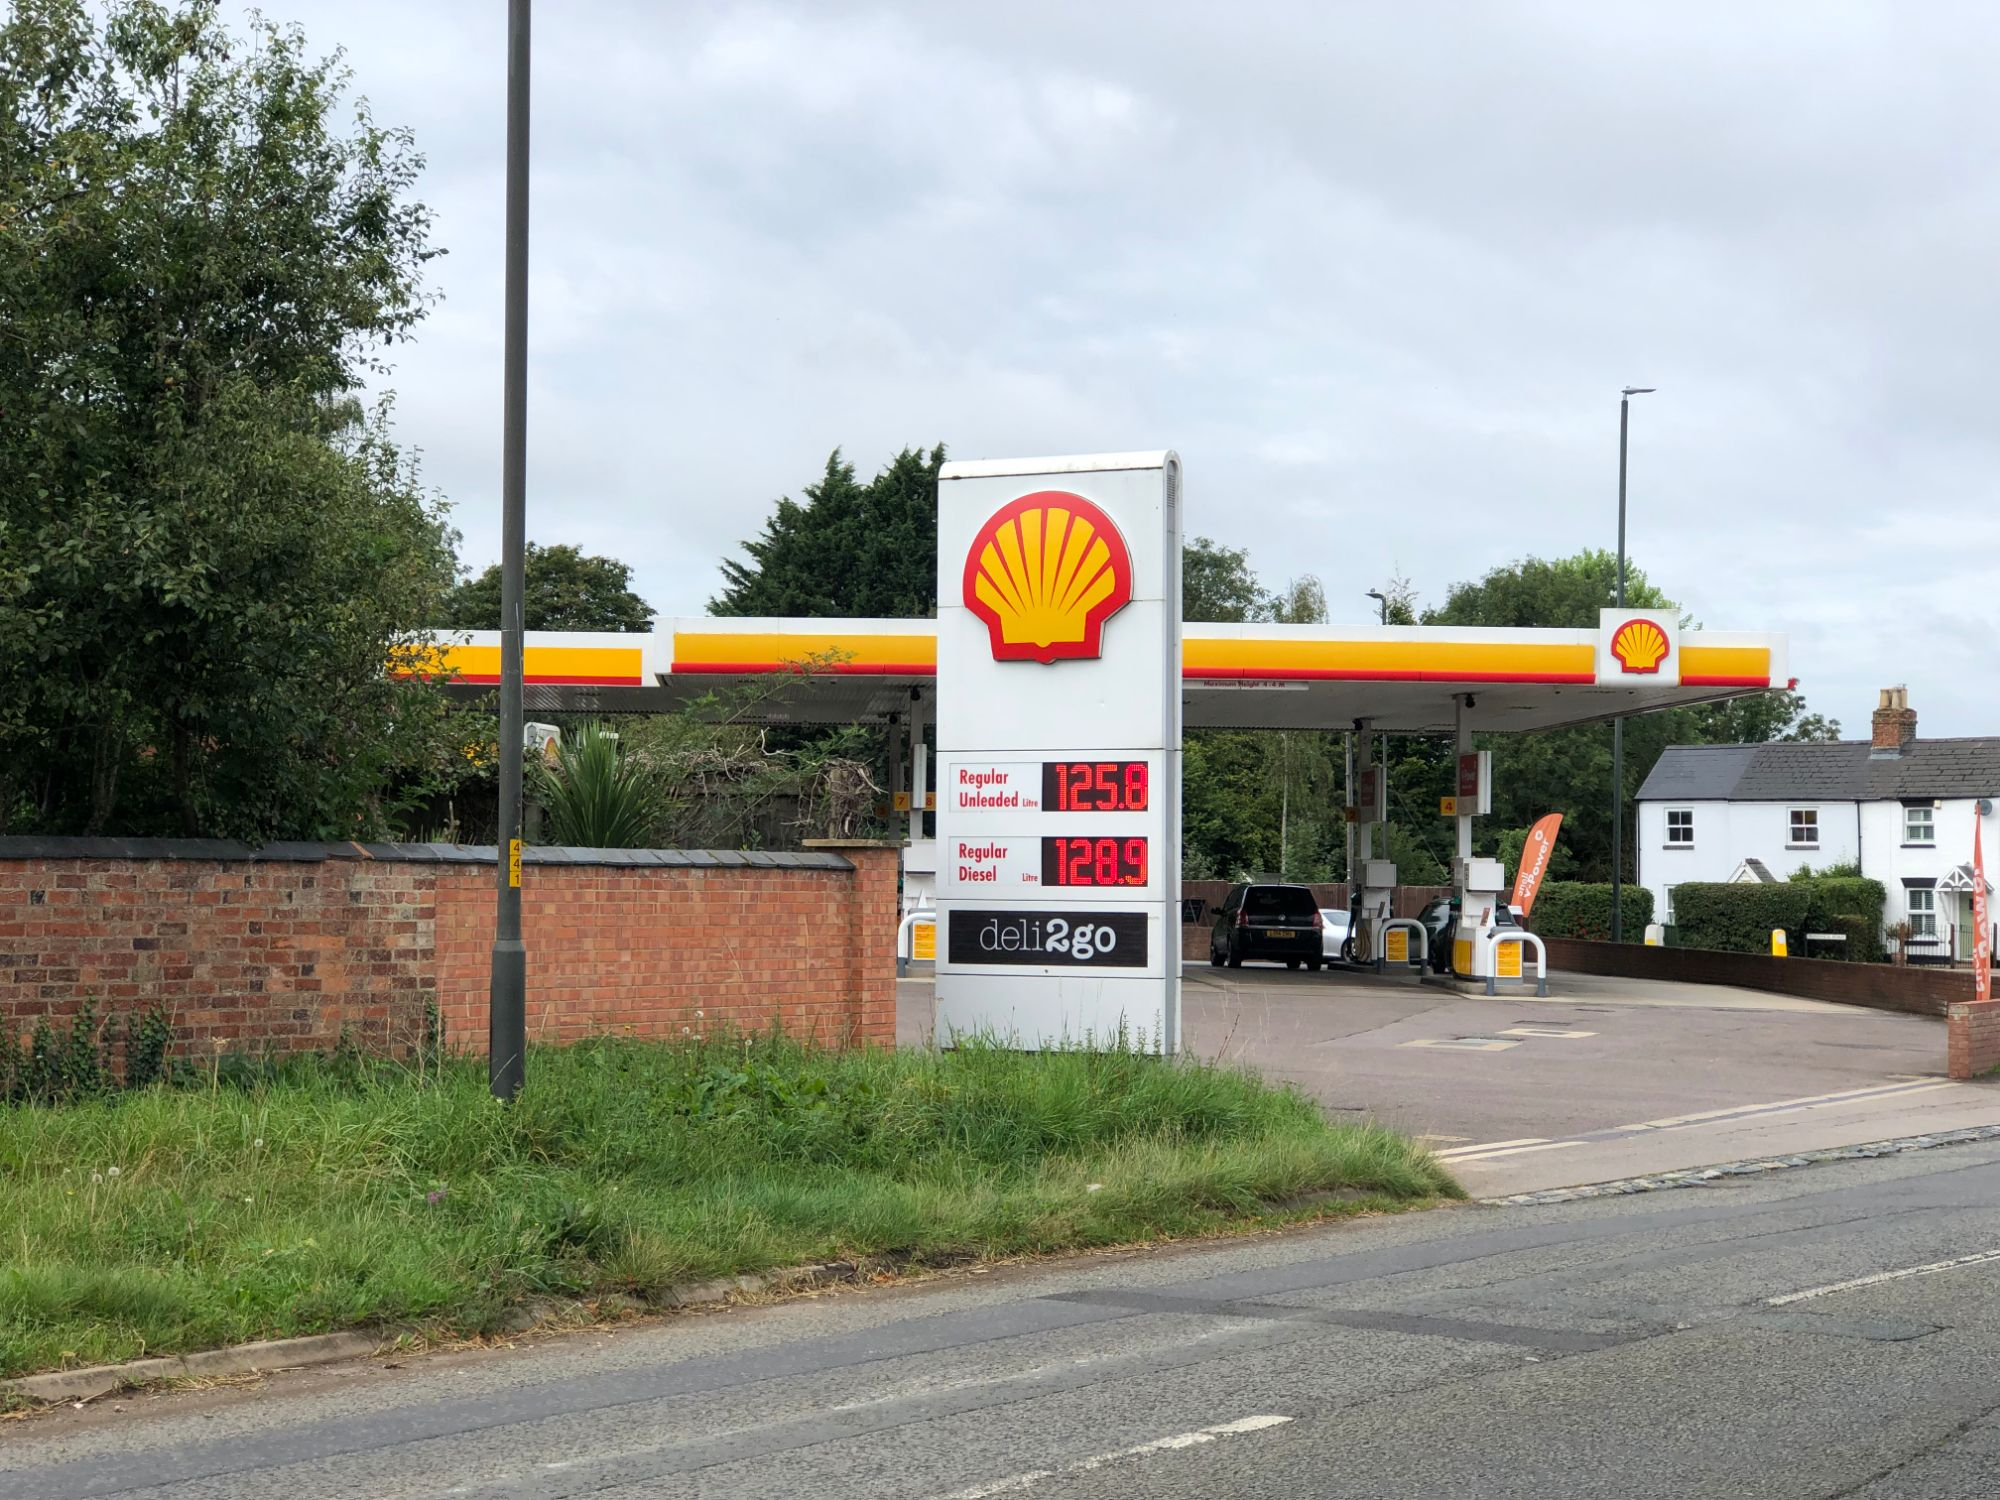 free stock image photo Shell garage fuel station